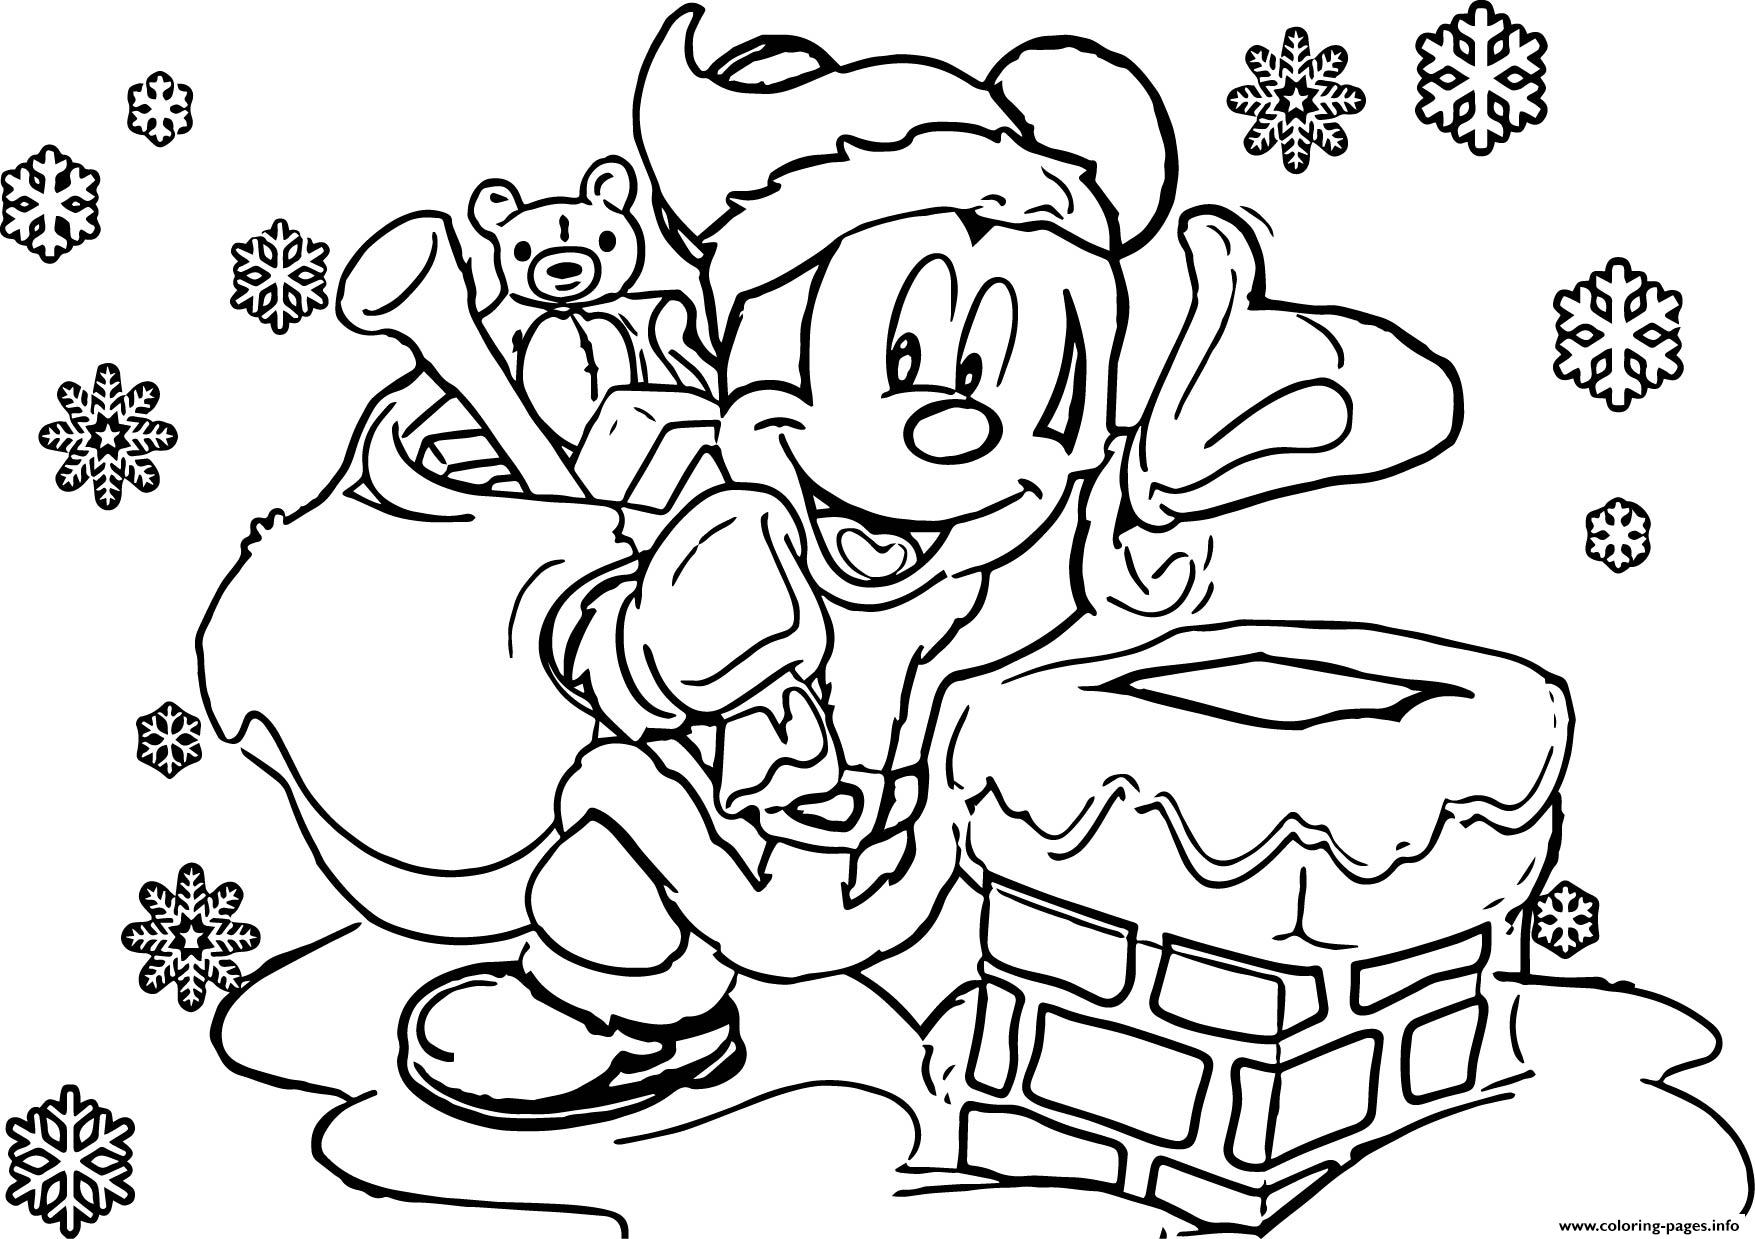 Christmas Images Coloring Book With Disney Color Pages Printable